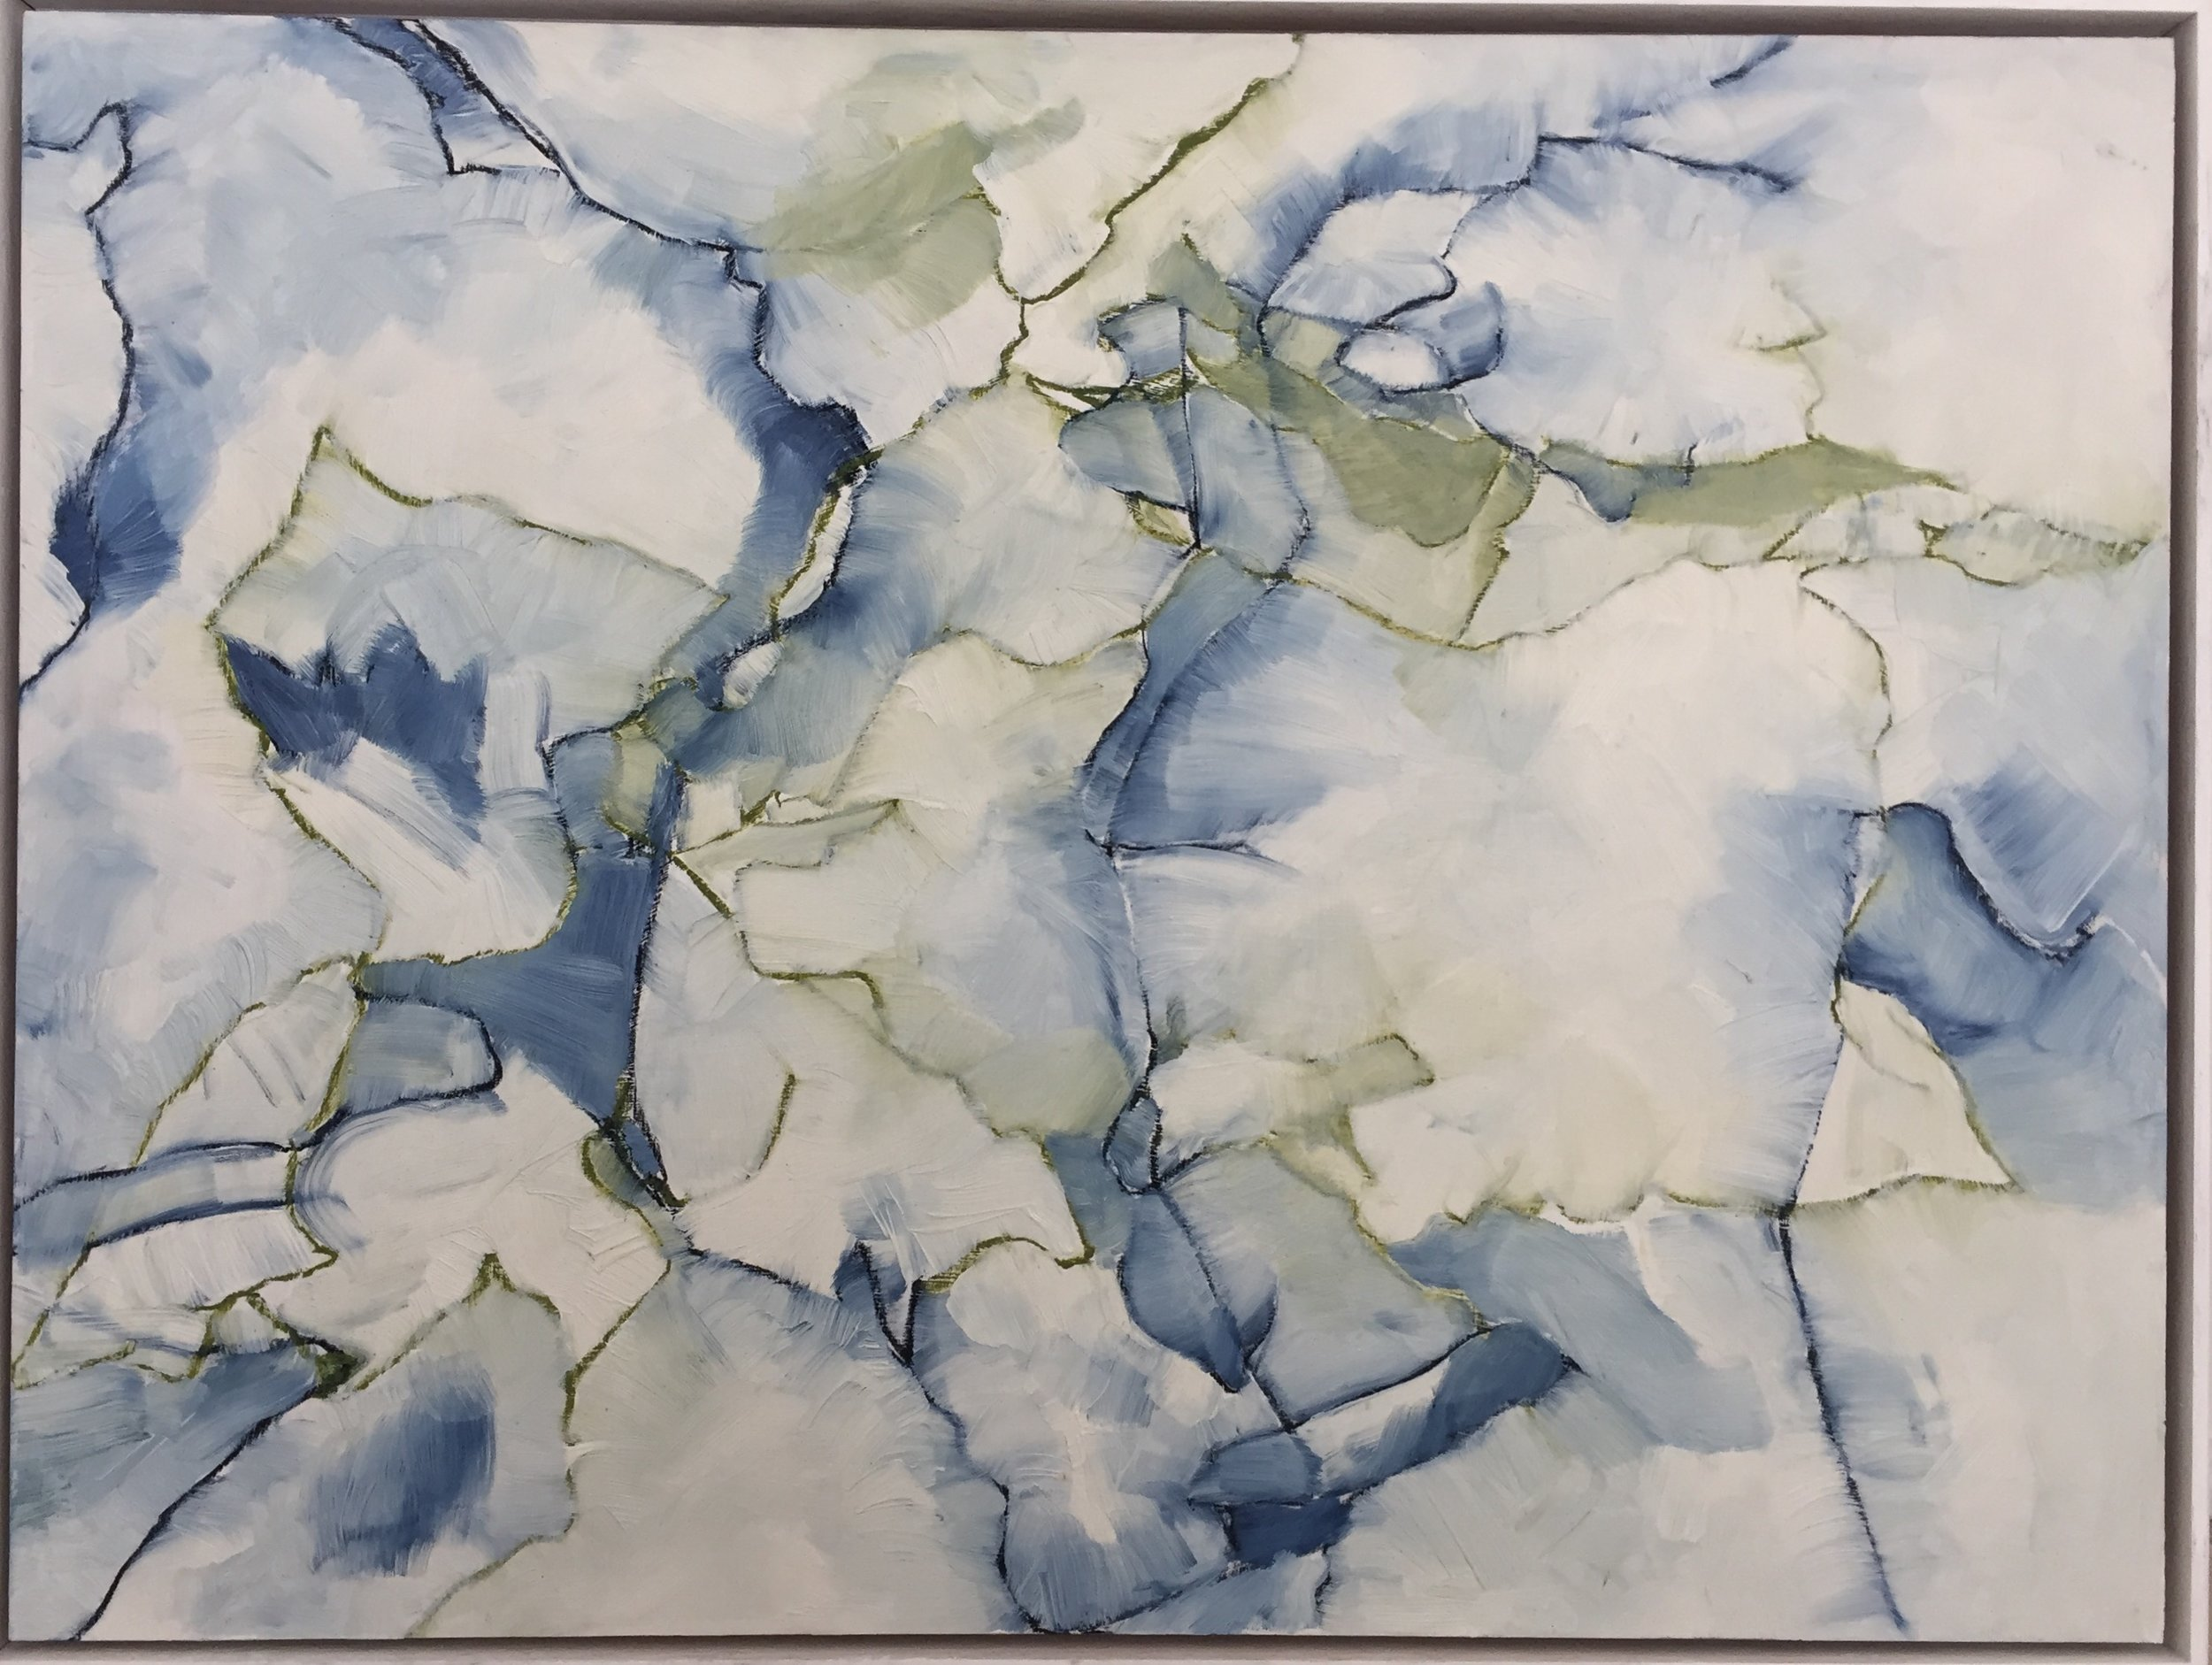 Penny Dunstan_Continuities (from an imaged post-mining landscape)_2017_chalk pastel and oil paint on board_ 51 x 68.2cm_$250.00.jpg